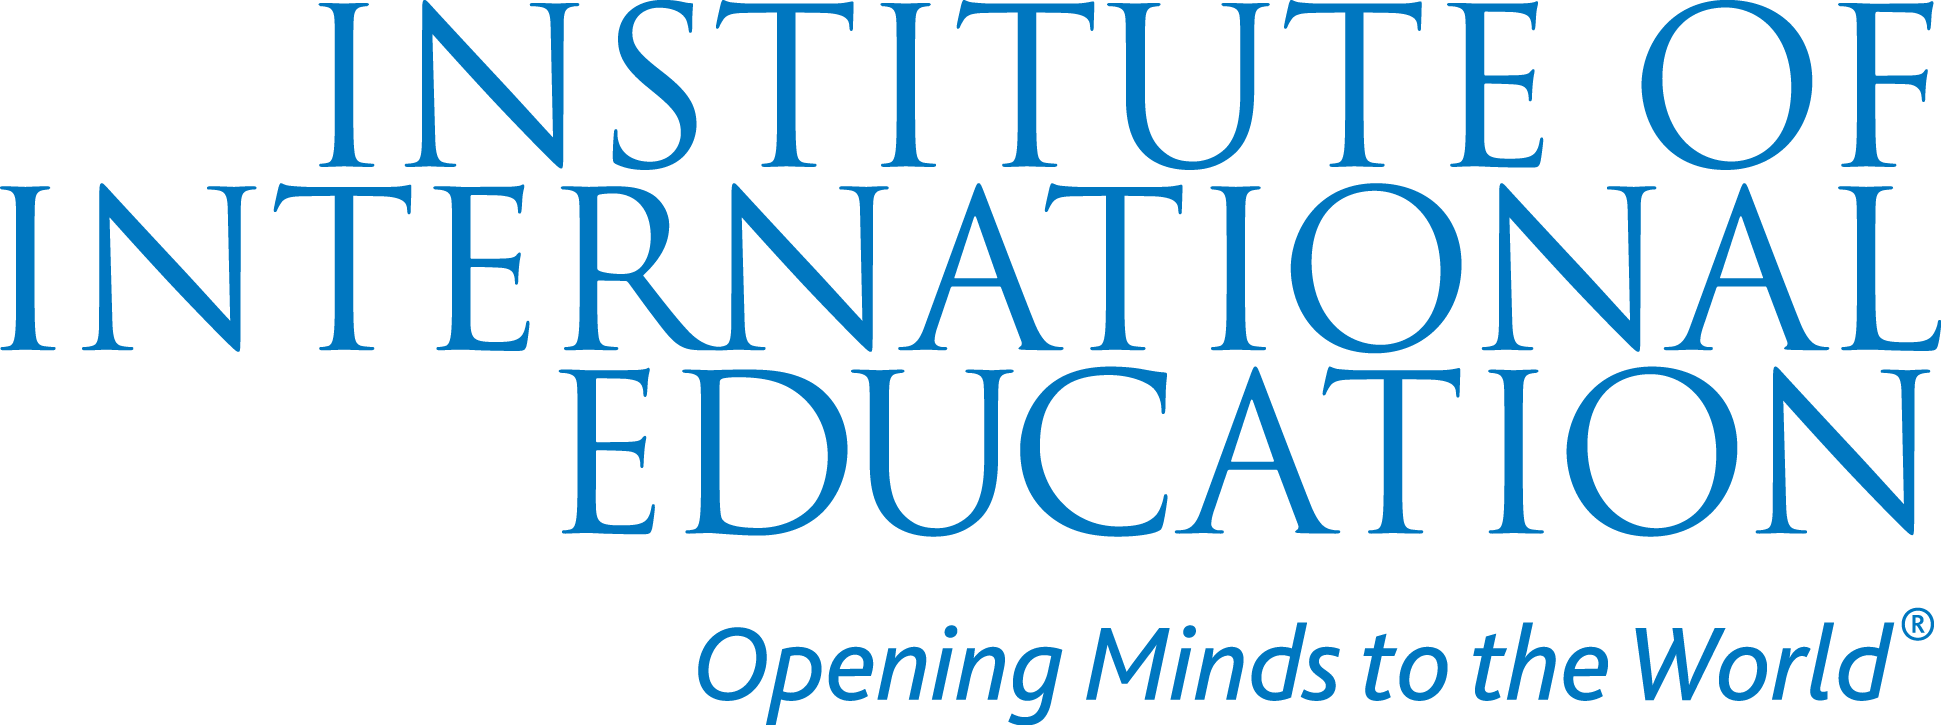 IIE Logo Blue large w O.png